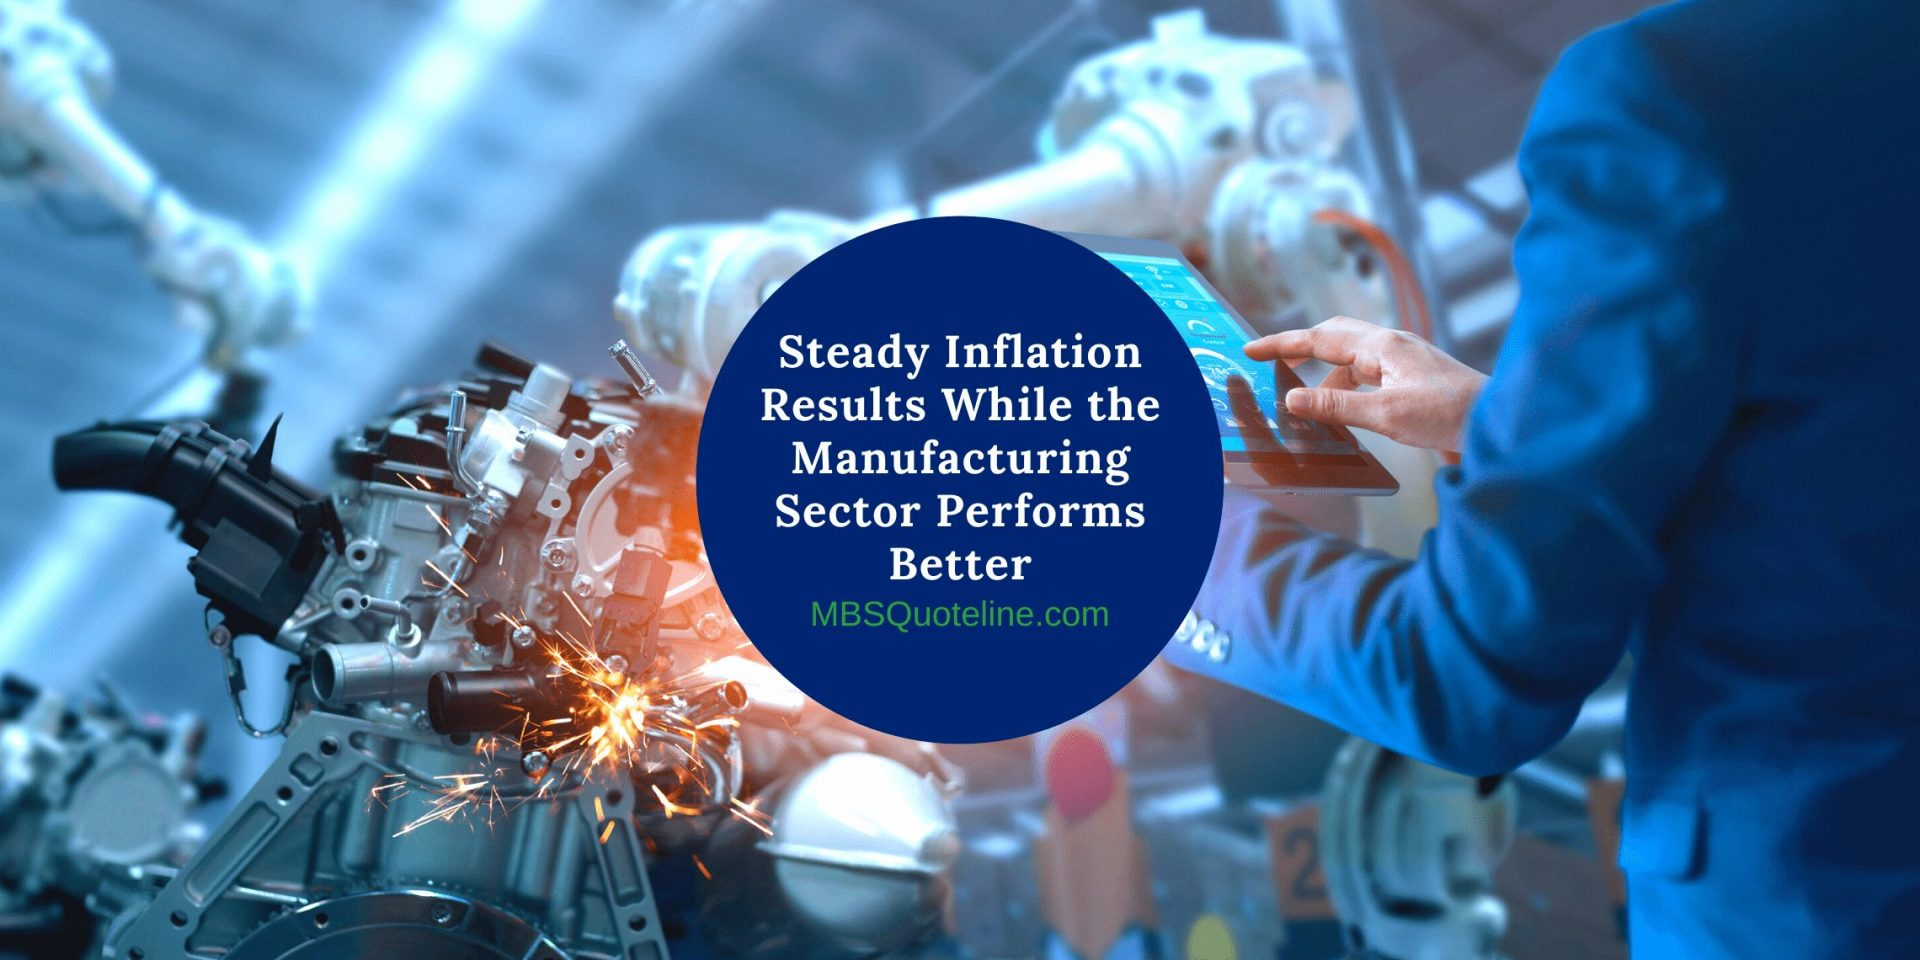 Steady Inflation Results While the Manufacturing Sector Performs Better featured mortgagetime mbsquoteline